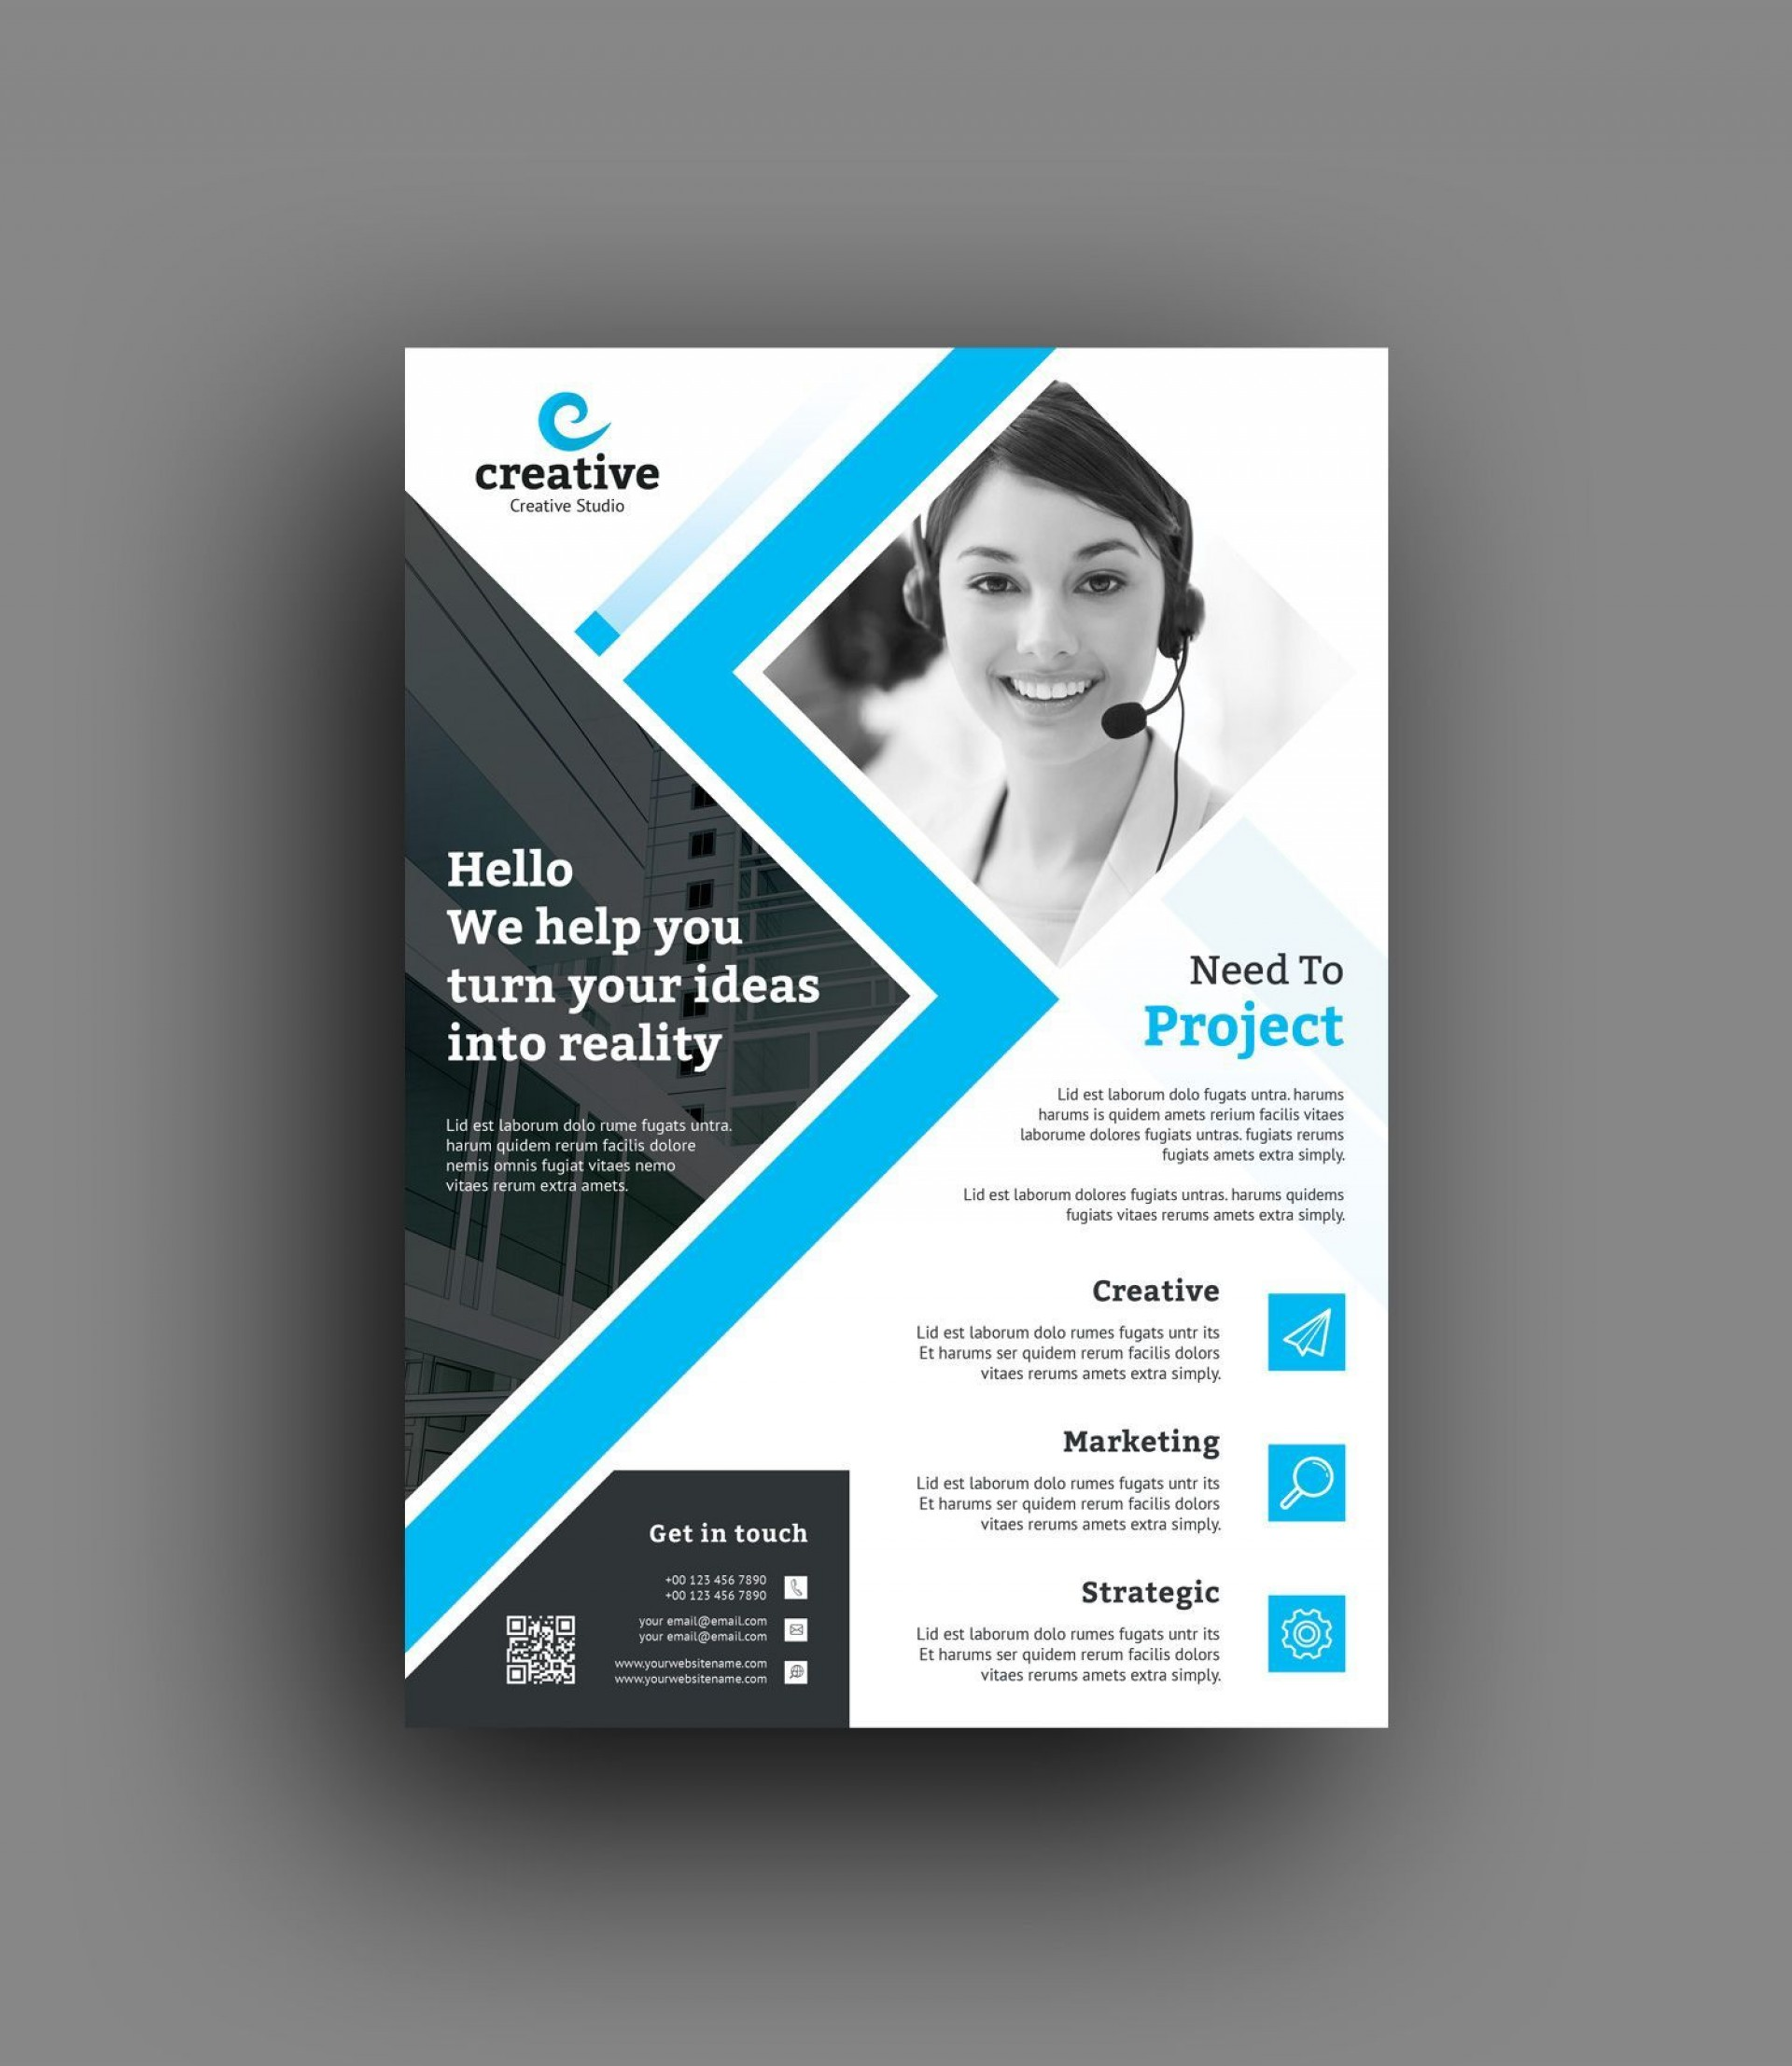 002 Singular In Design Flyer Template High Resolution  Templates Indesign Free For Mac Event1920